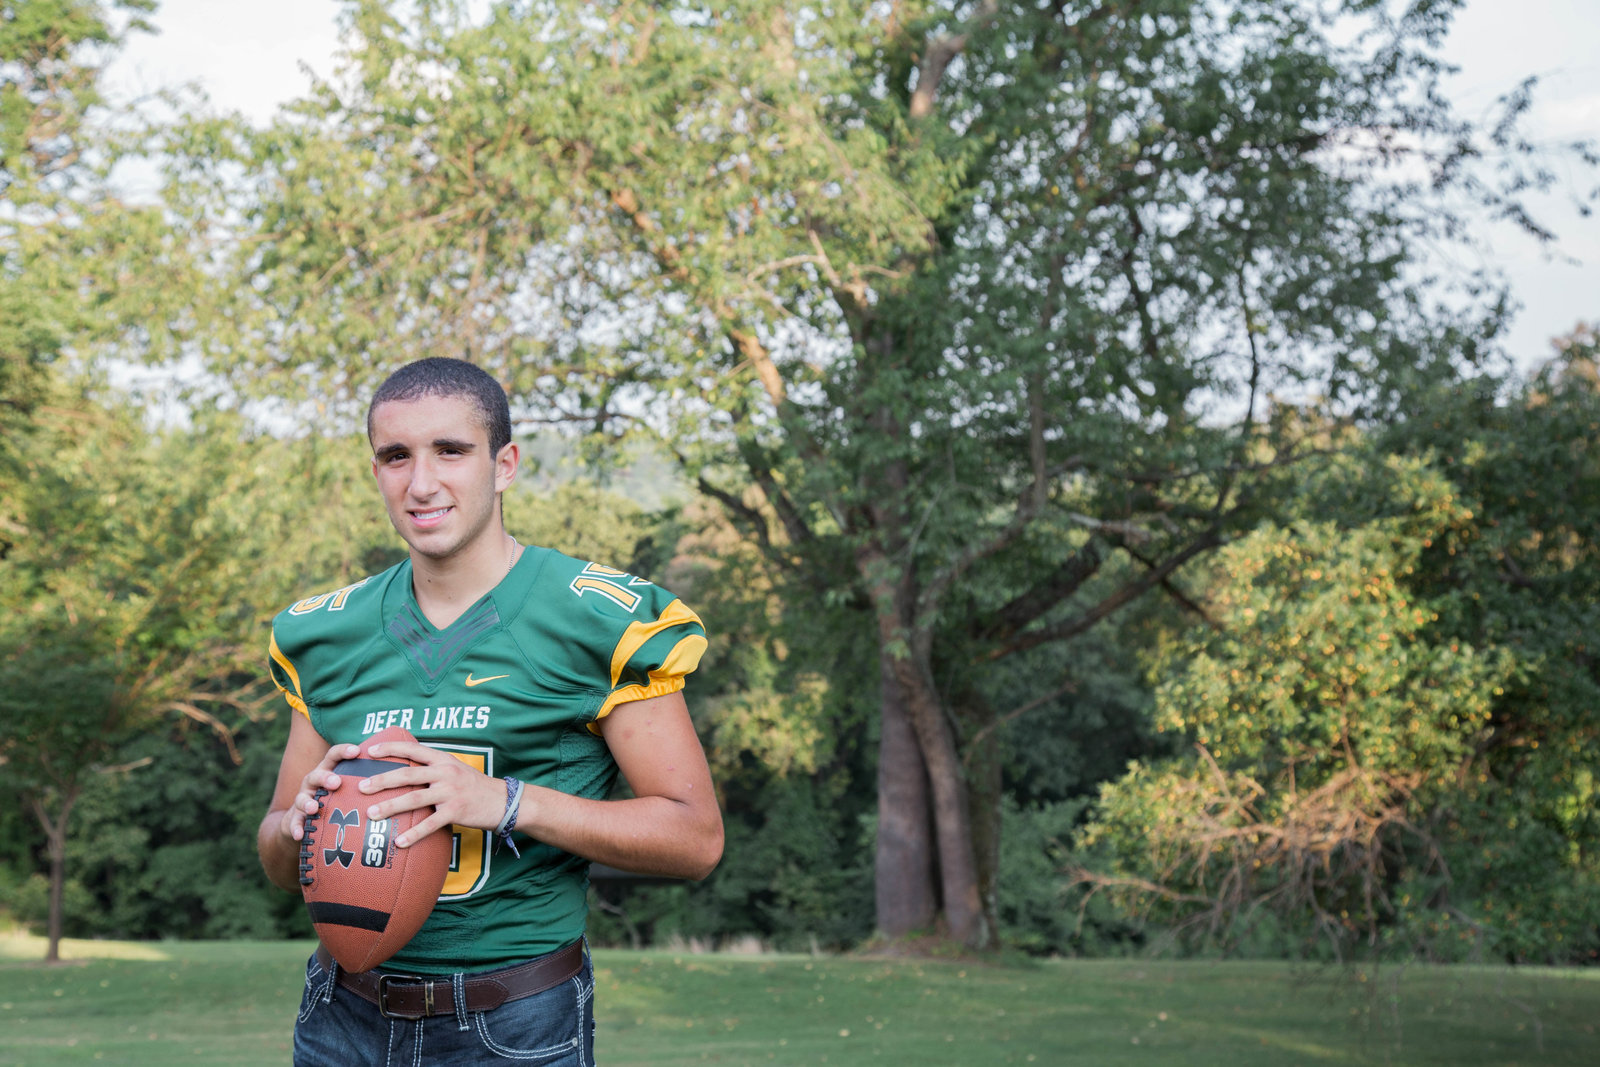 senior boy wearing football jersey stands in field at hartwood acres